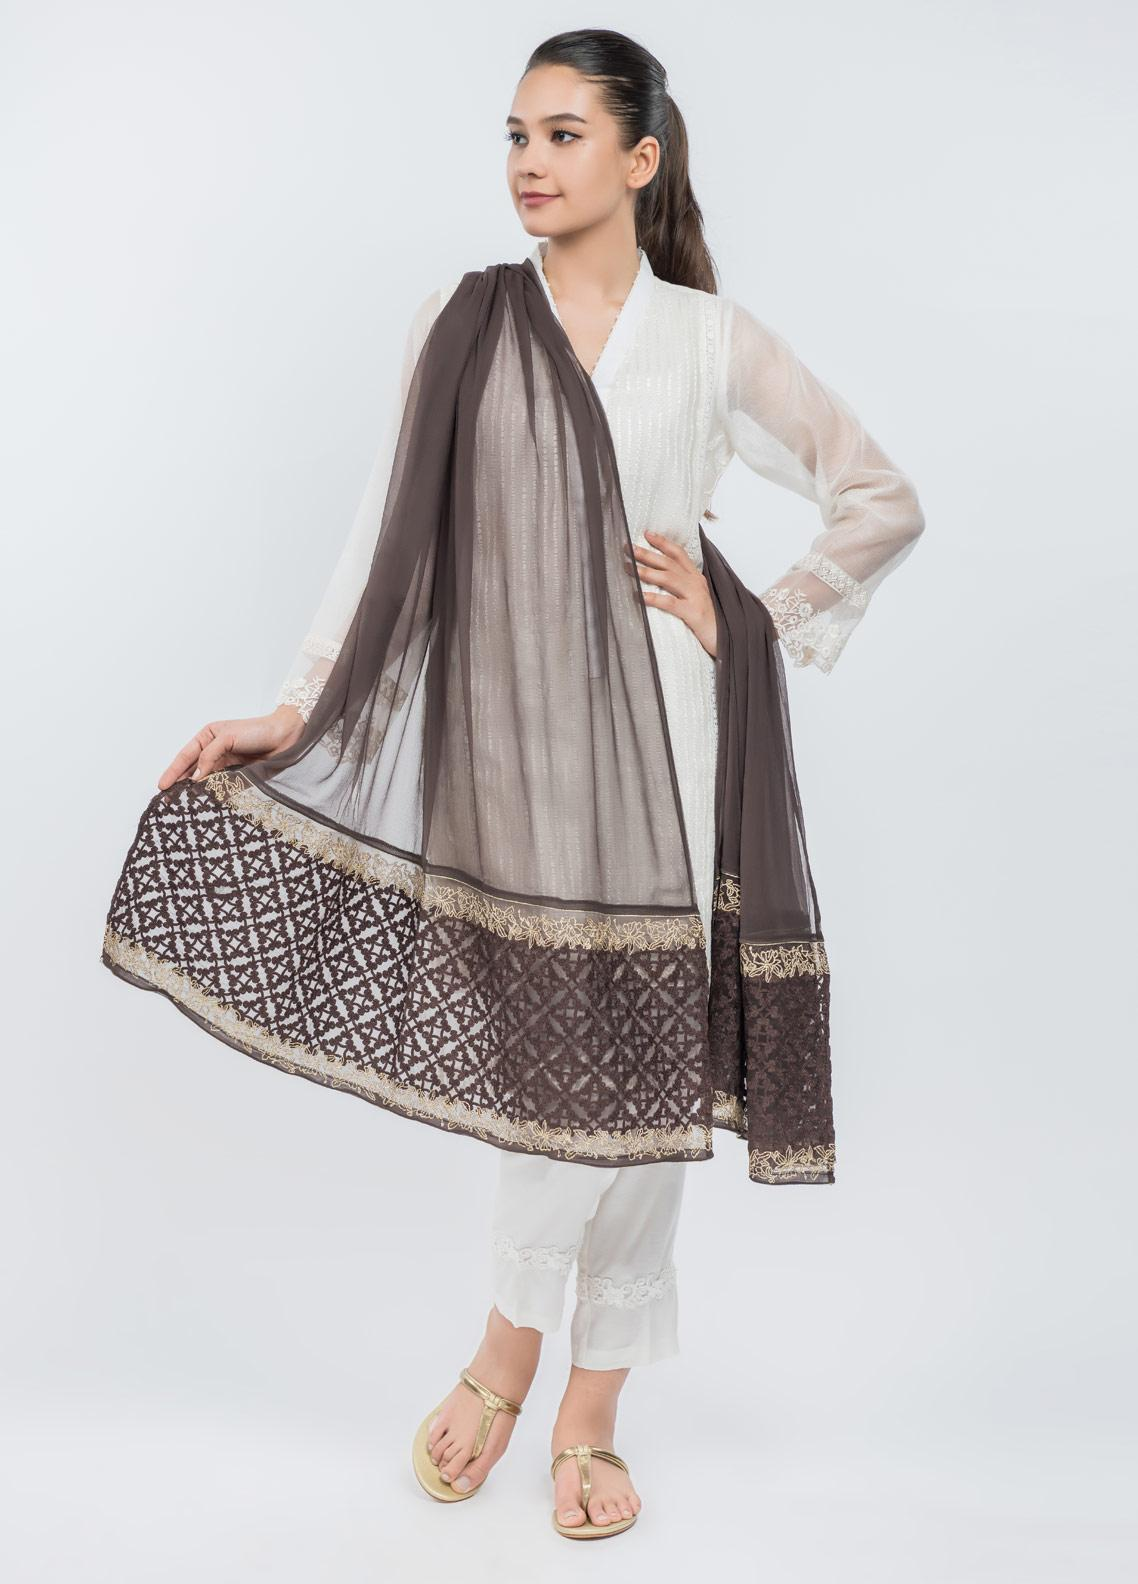 Dhanak Embroidered Chiffon Stitched Dupatta Brown DD-0748